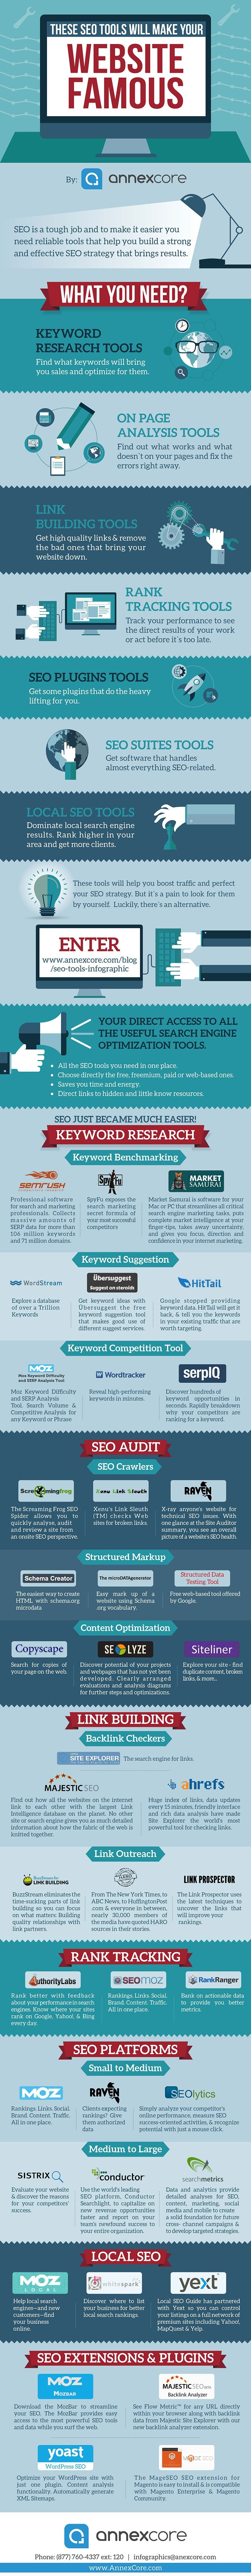 These SEO Tools Will Make Your Website Famous - #infographic